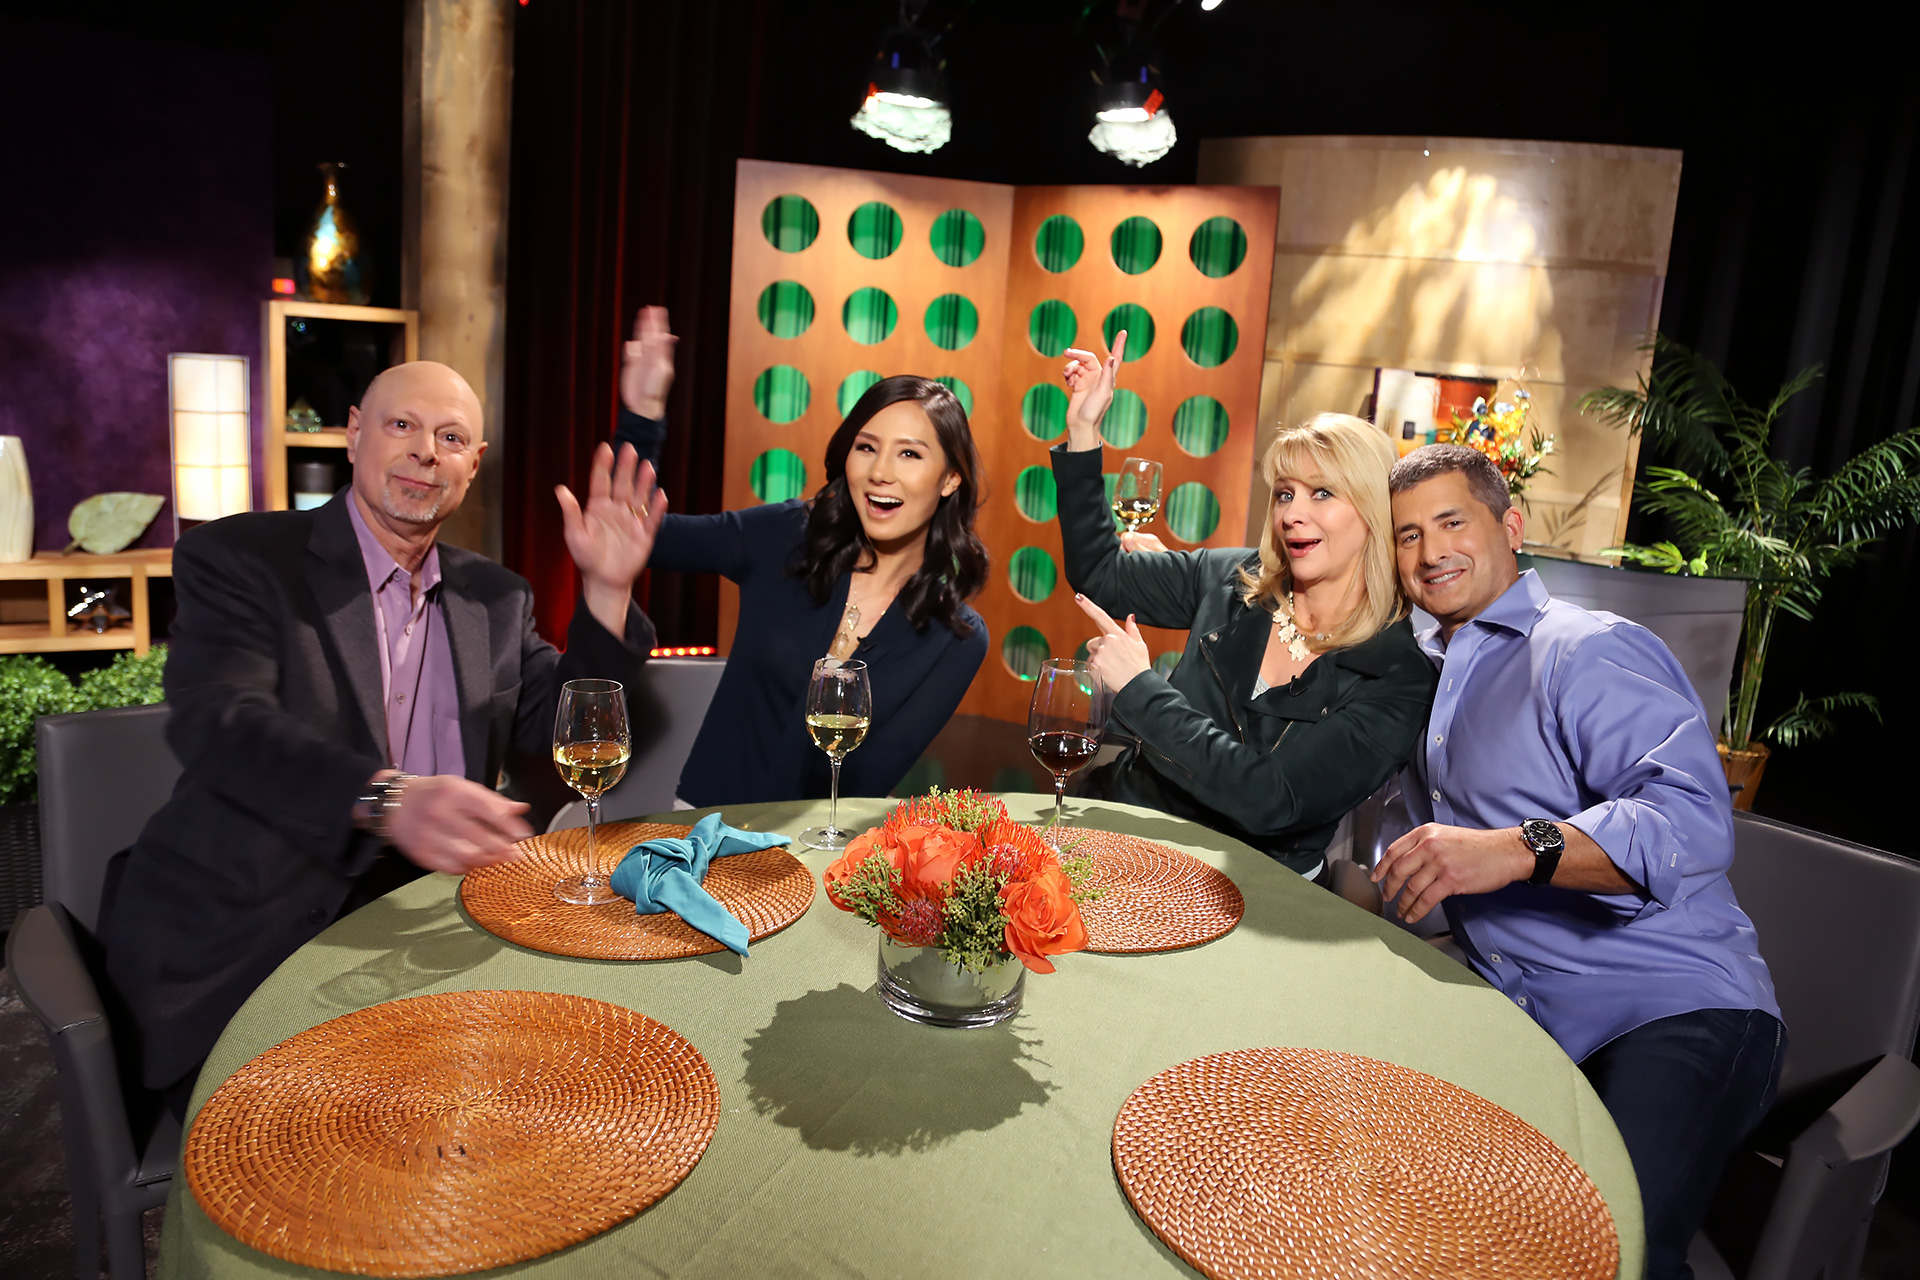 Host Leslie Sbrocco and guests having fun on the set of season 13 episode 7.